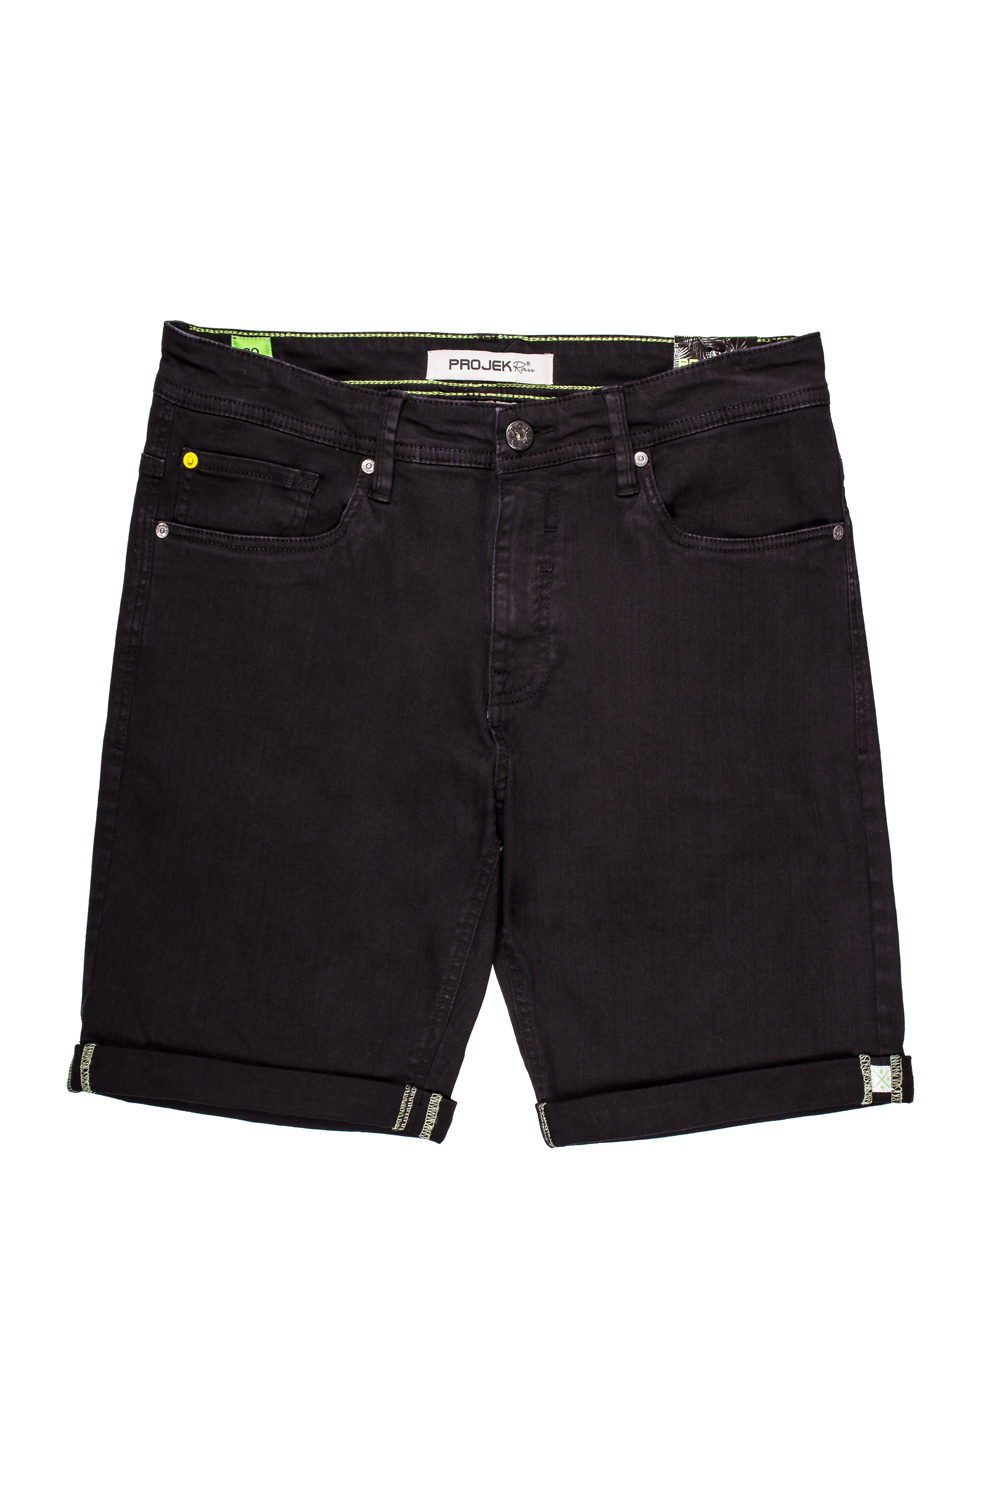 PROJEK MEN'S 5 POKET SHORT